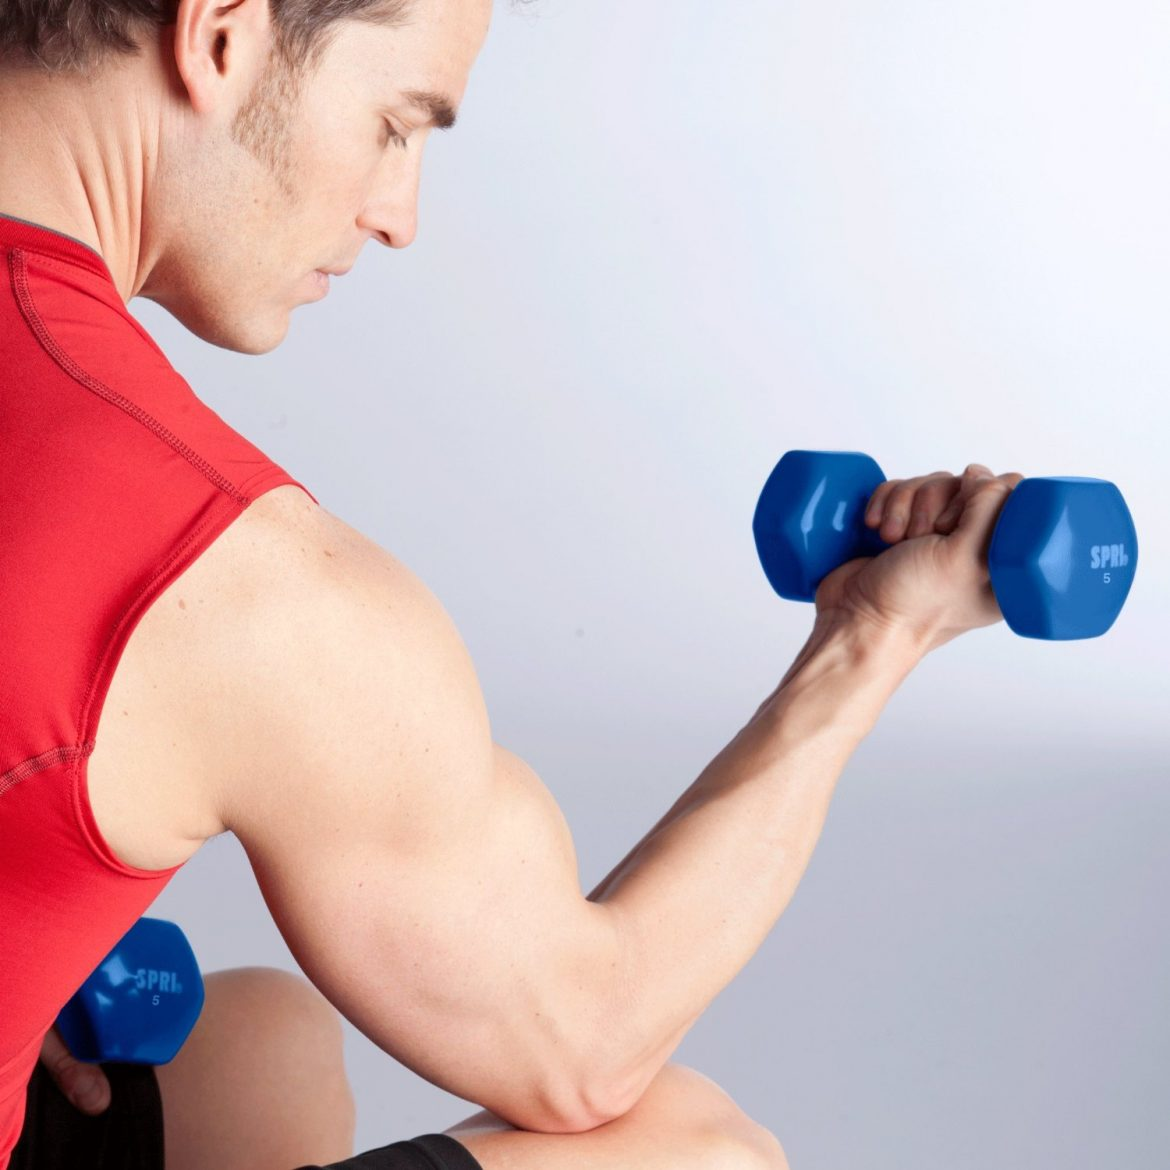 Top 9 Best Home Exercise Equipment To Loss Weight